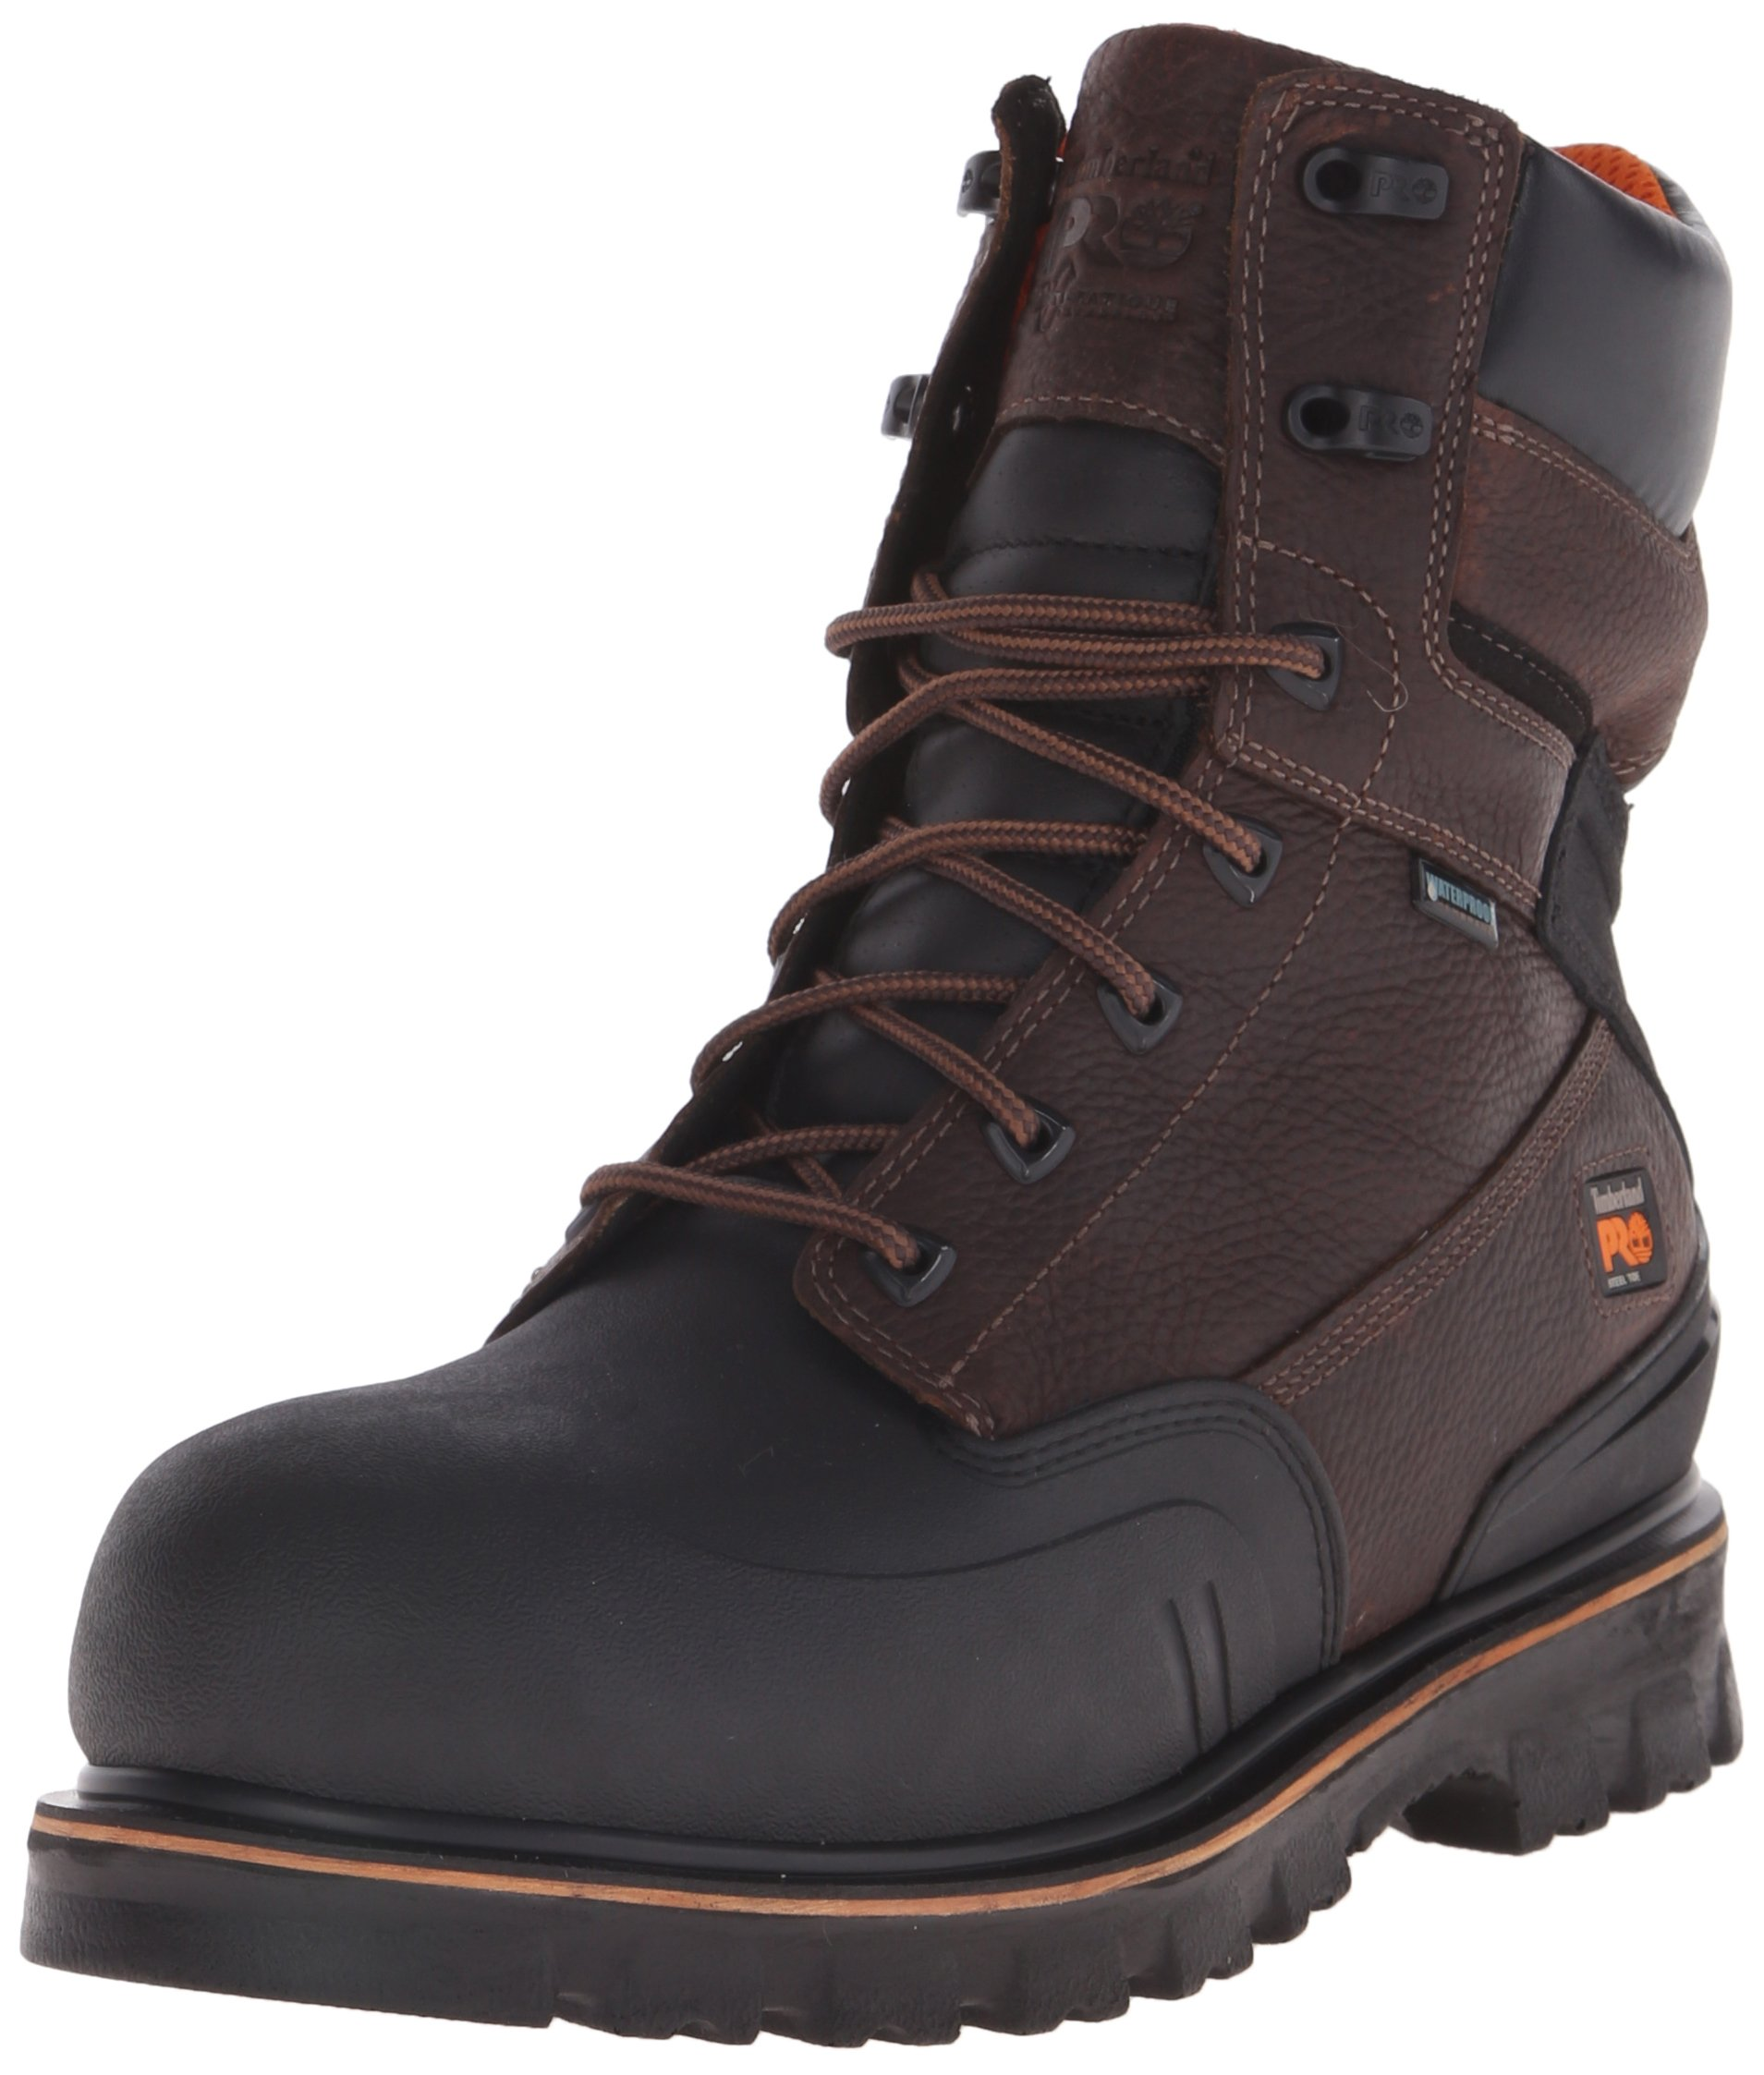 Timberland PRO Men's 8 Inch Rigmaster XT Steel Toe Waterproof Work Boot, Brown Tumbled Leather, 9.5 W US